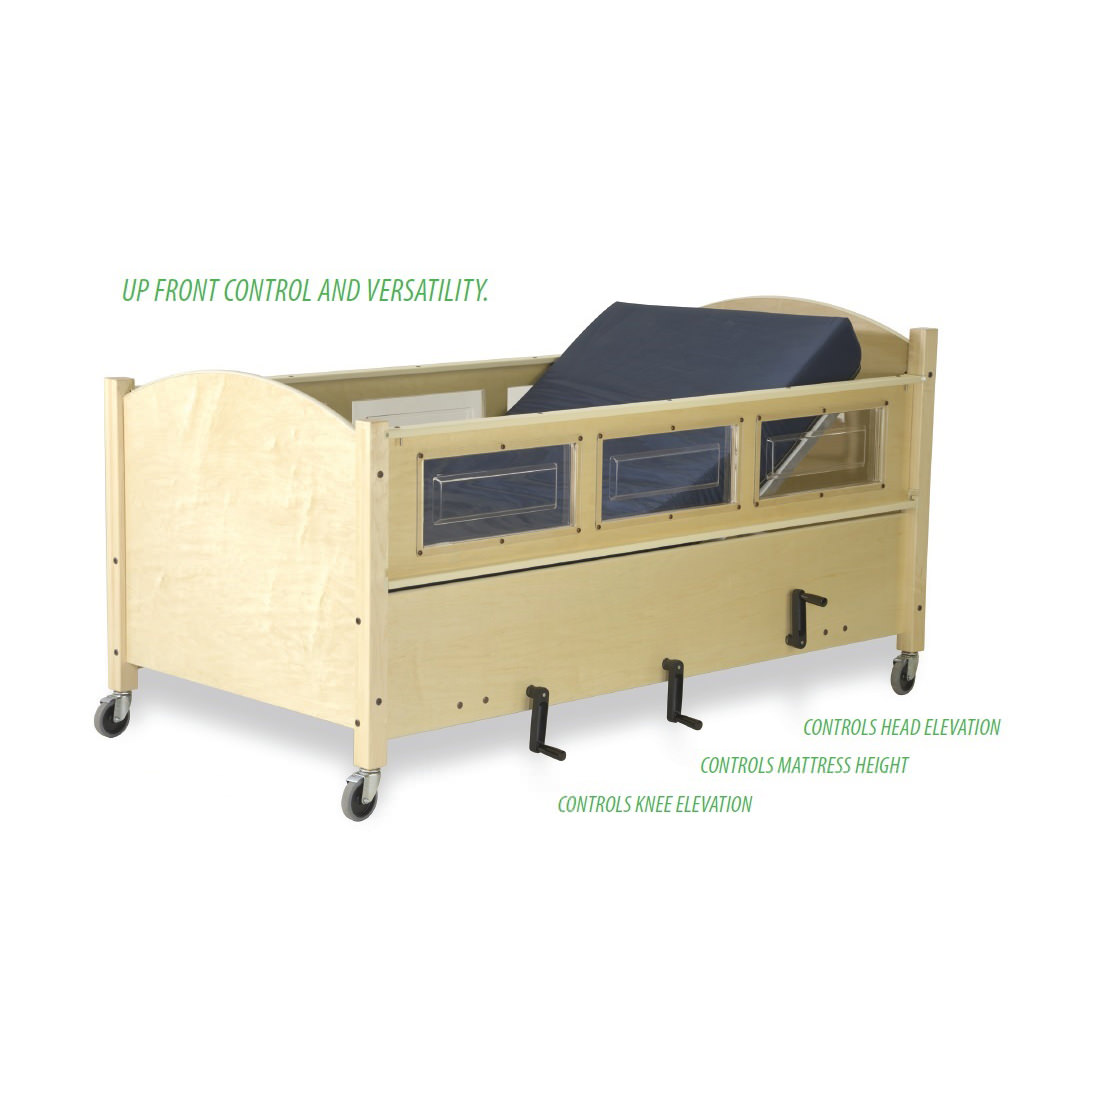 SleepSafer manual plus articulating tall bed